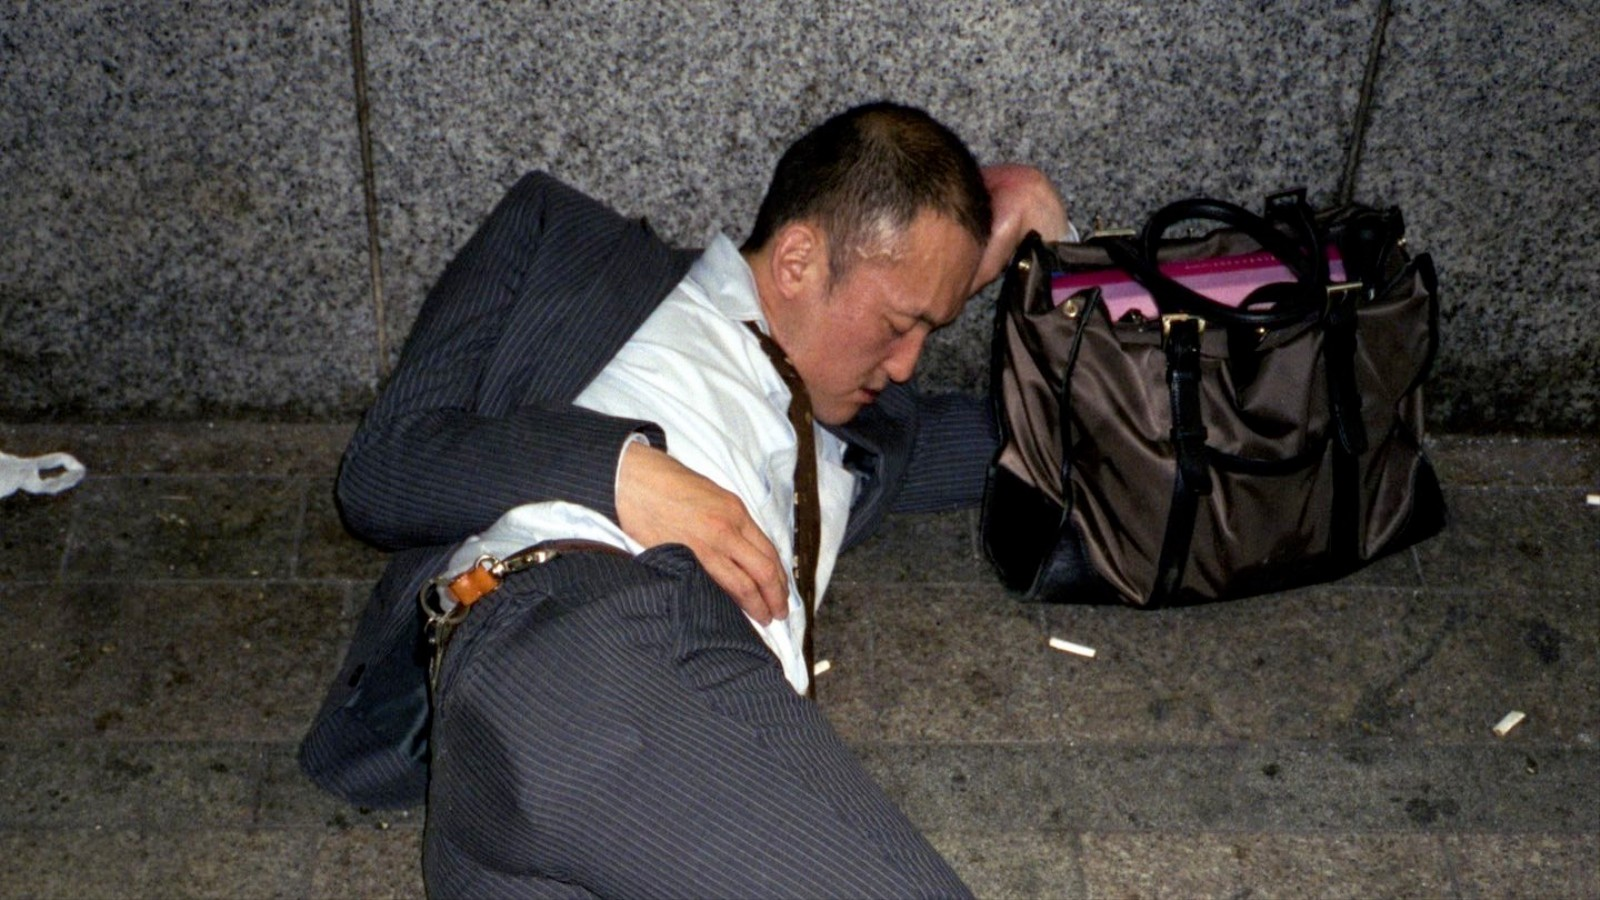 Photos of Japan's Office Workers During Their 60-Hour Weeks